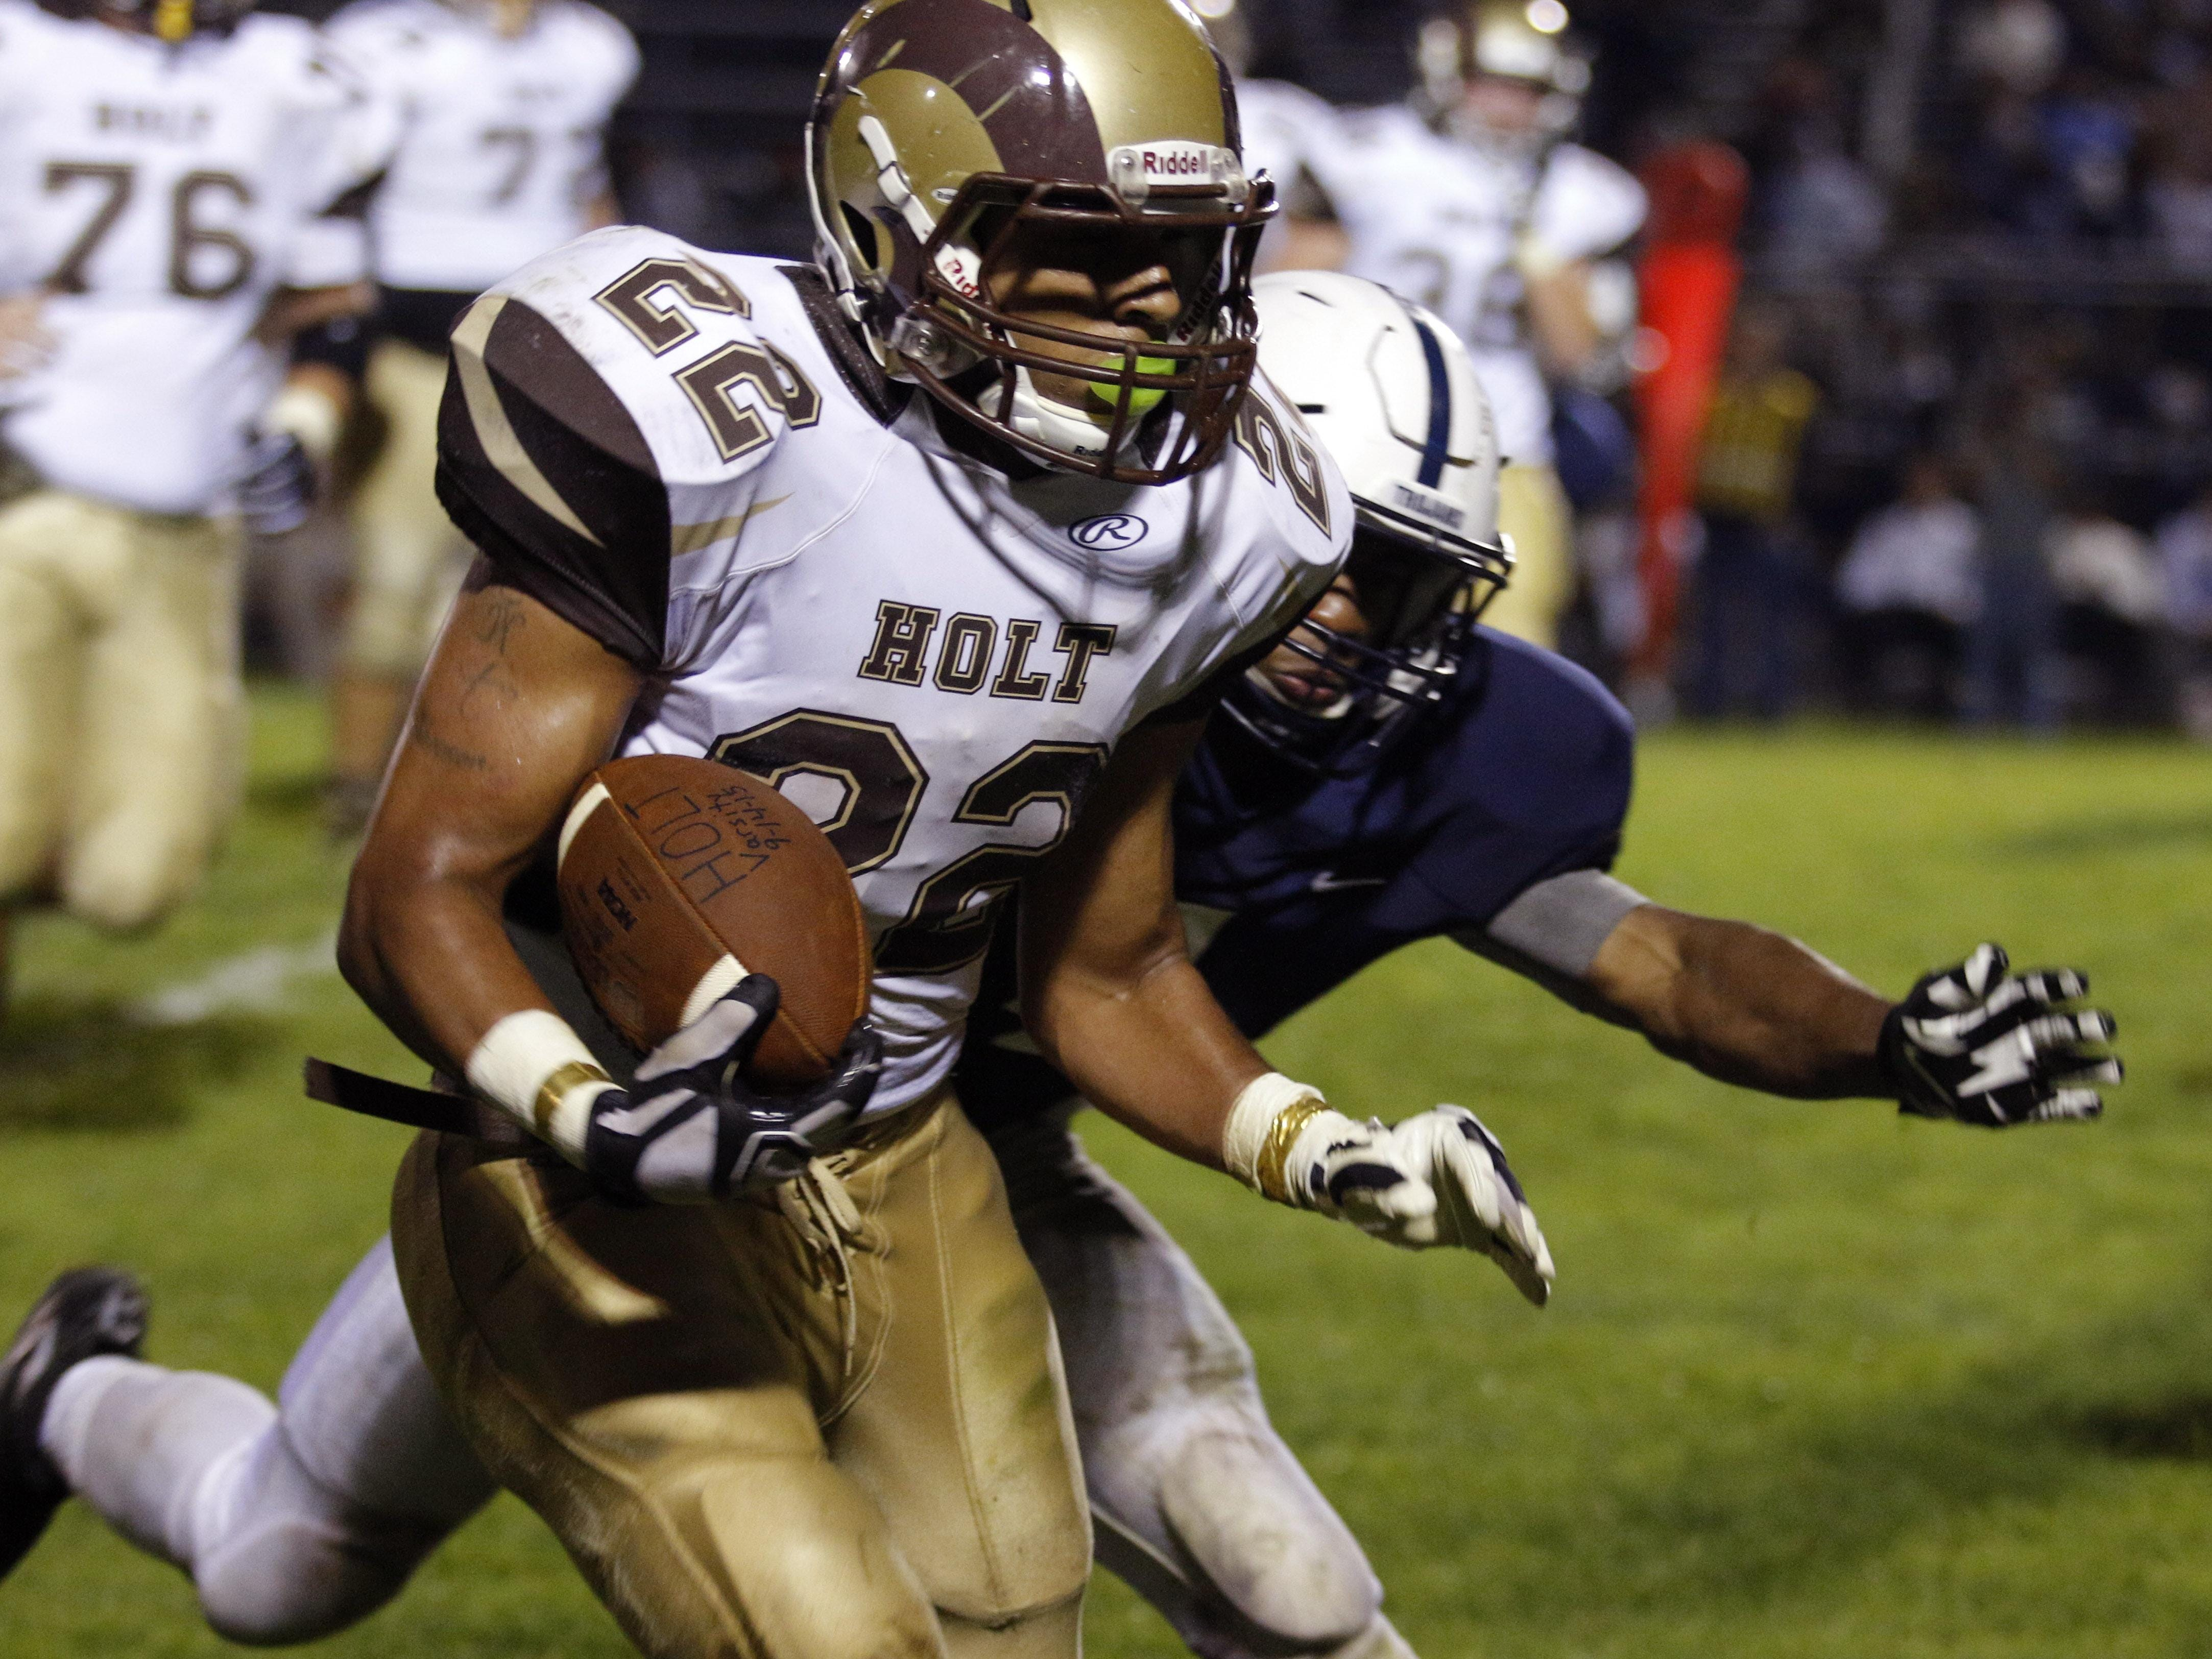 Holt's Trent Stone has rushed for 923 yards and 12 touchdowns this season.